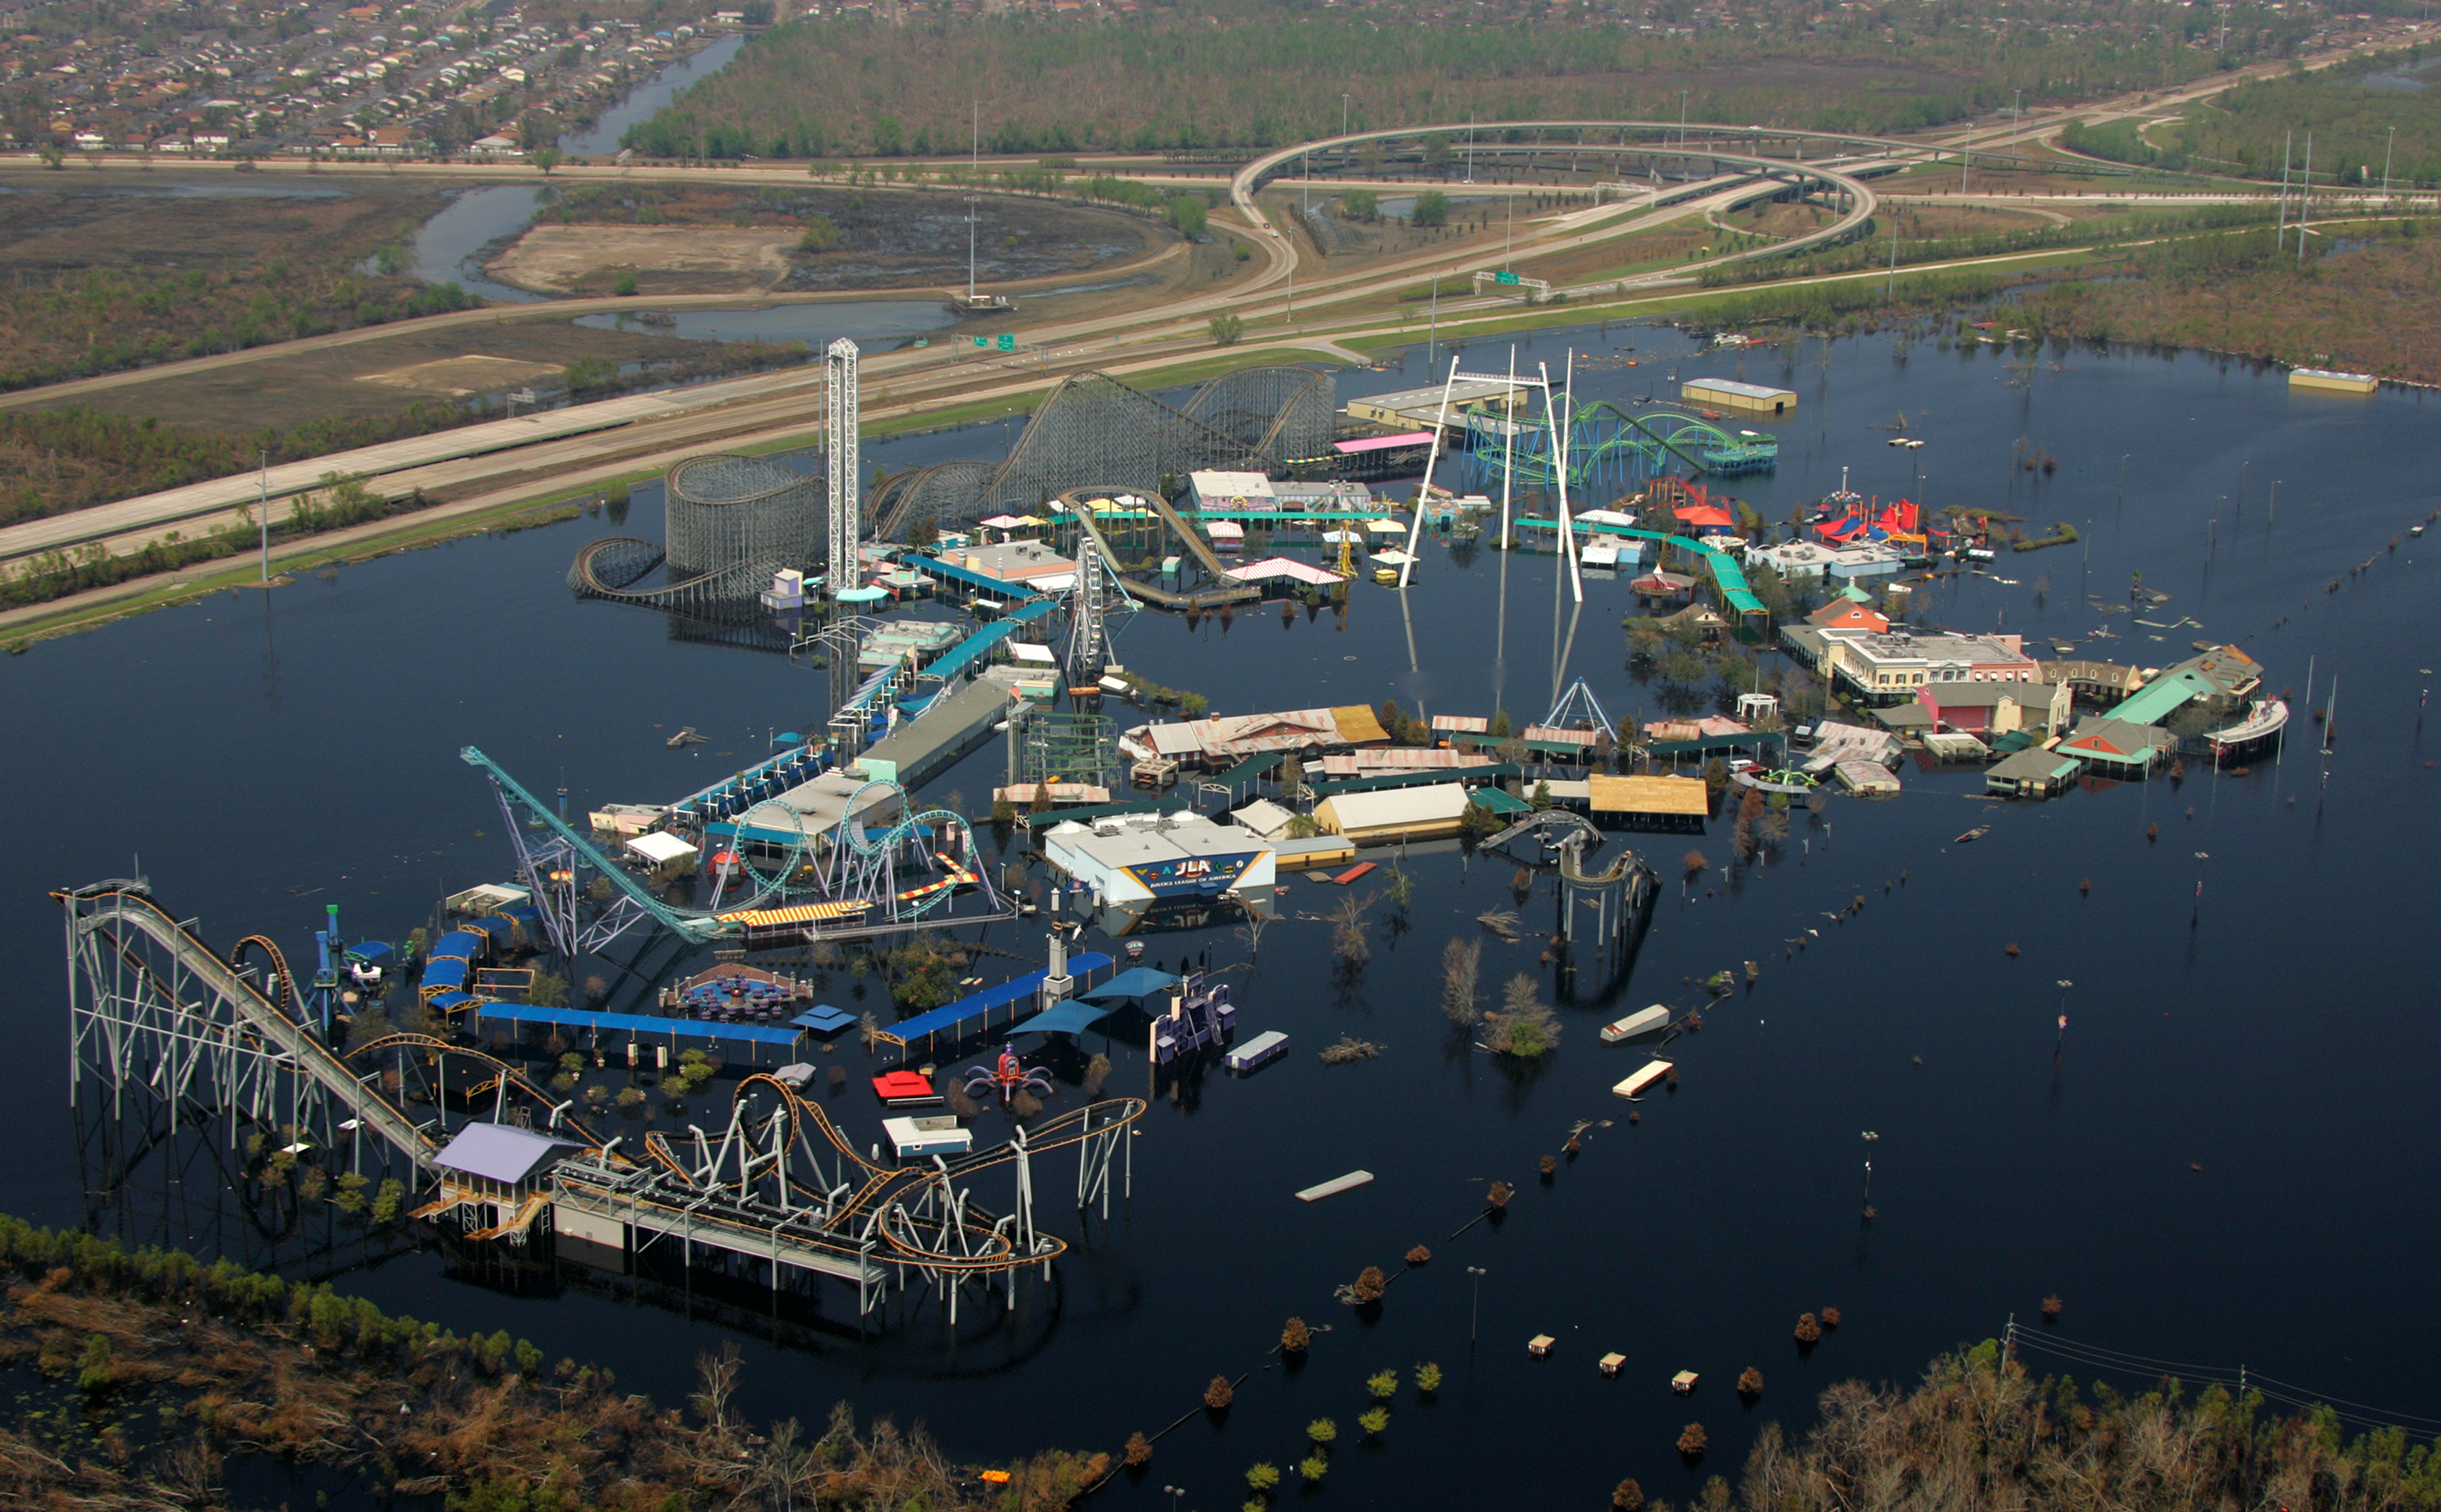 effects of hurricane katrina in new orleans six flags new orleans still flooded 2 weeks after the levee failures